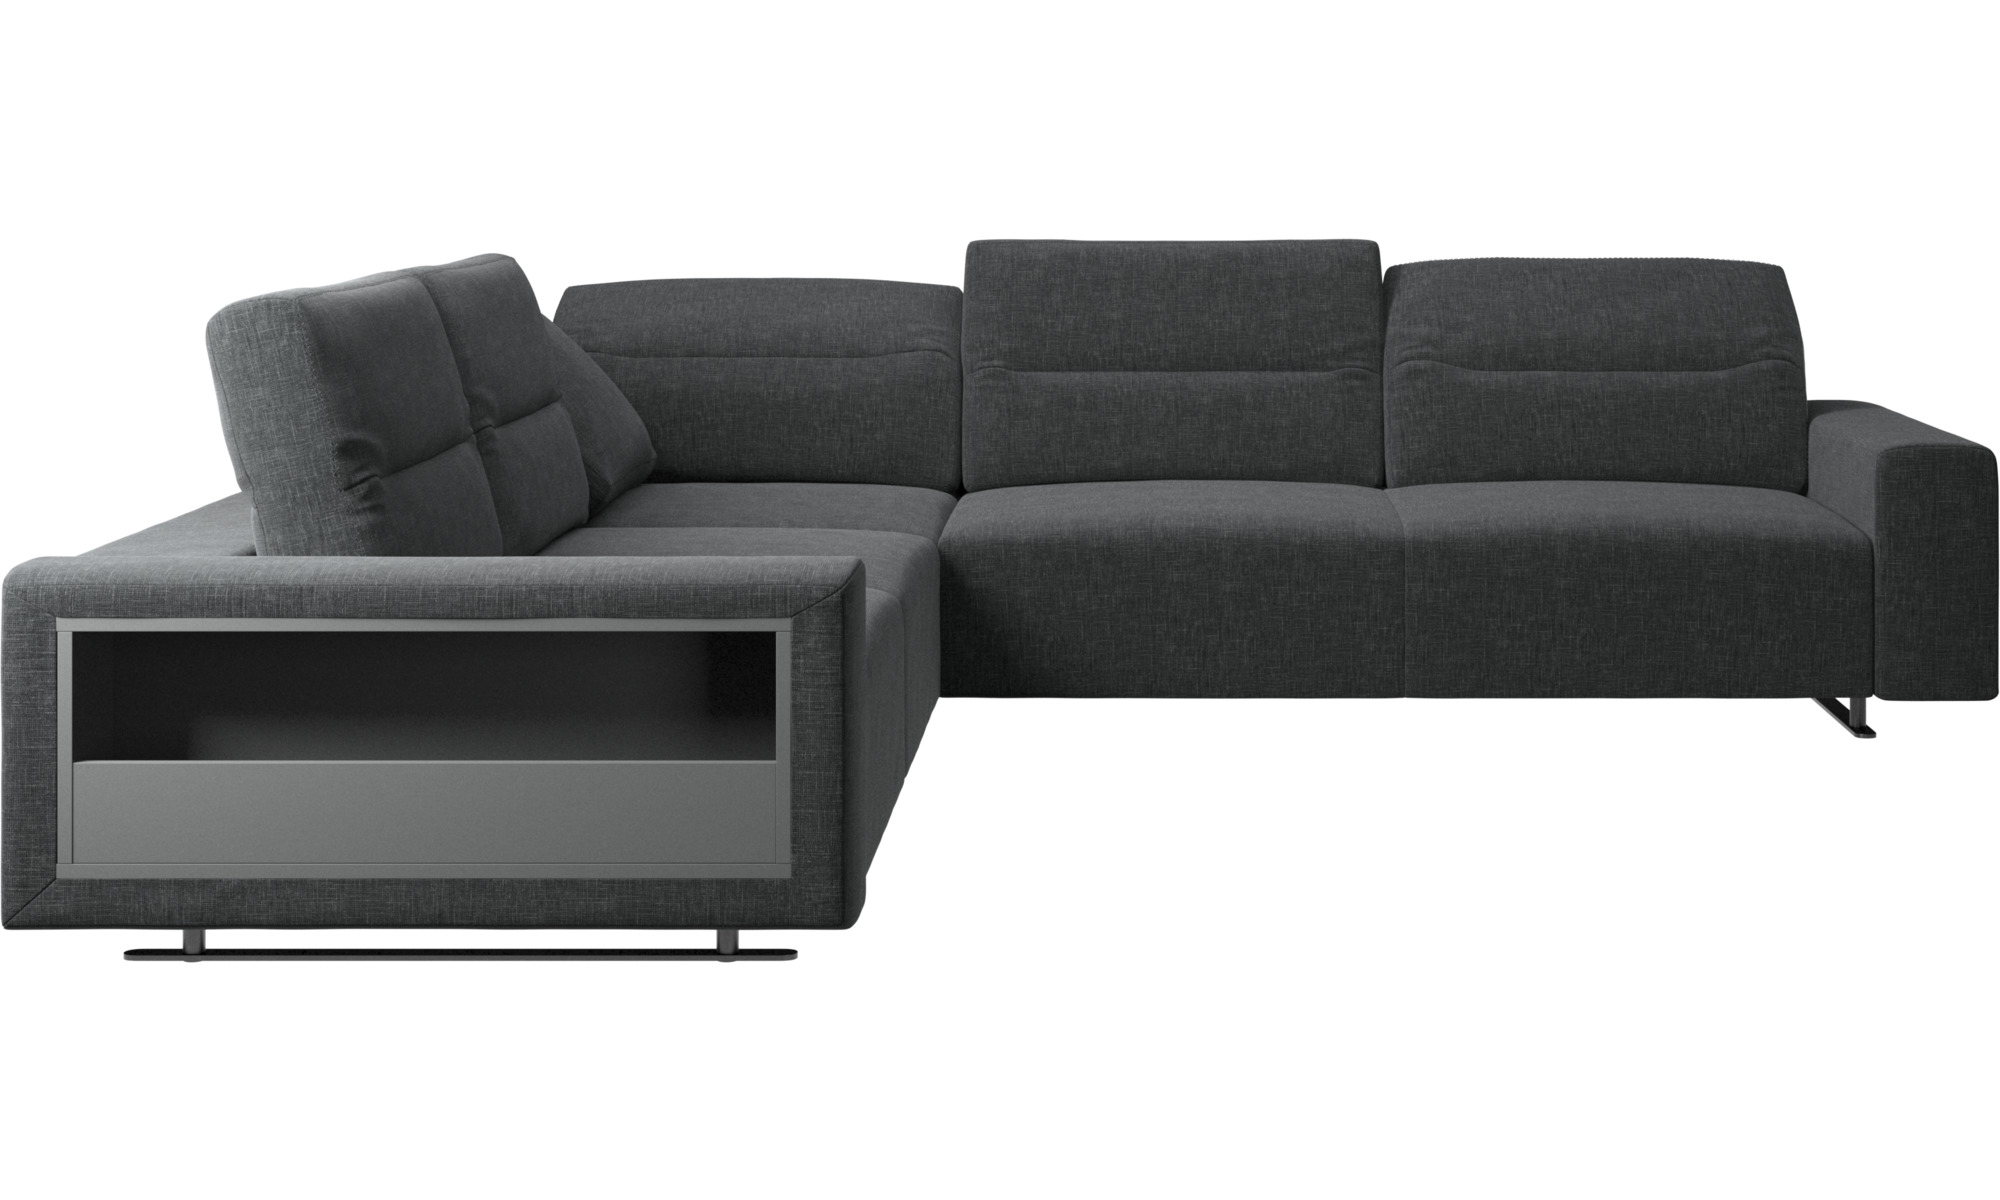 Corner Sofas Hampton Corner Sofa With Adjustable Back And Storage On Left Side Boconcept